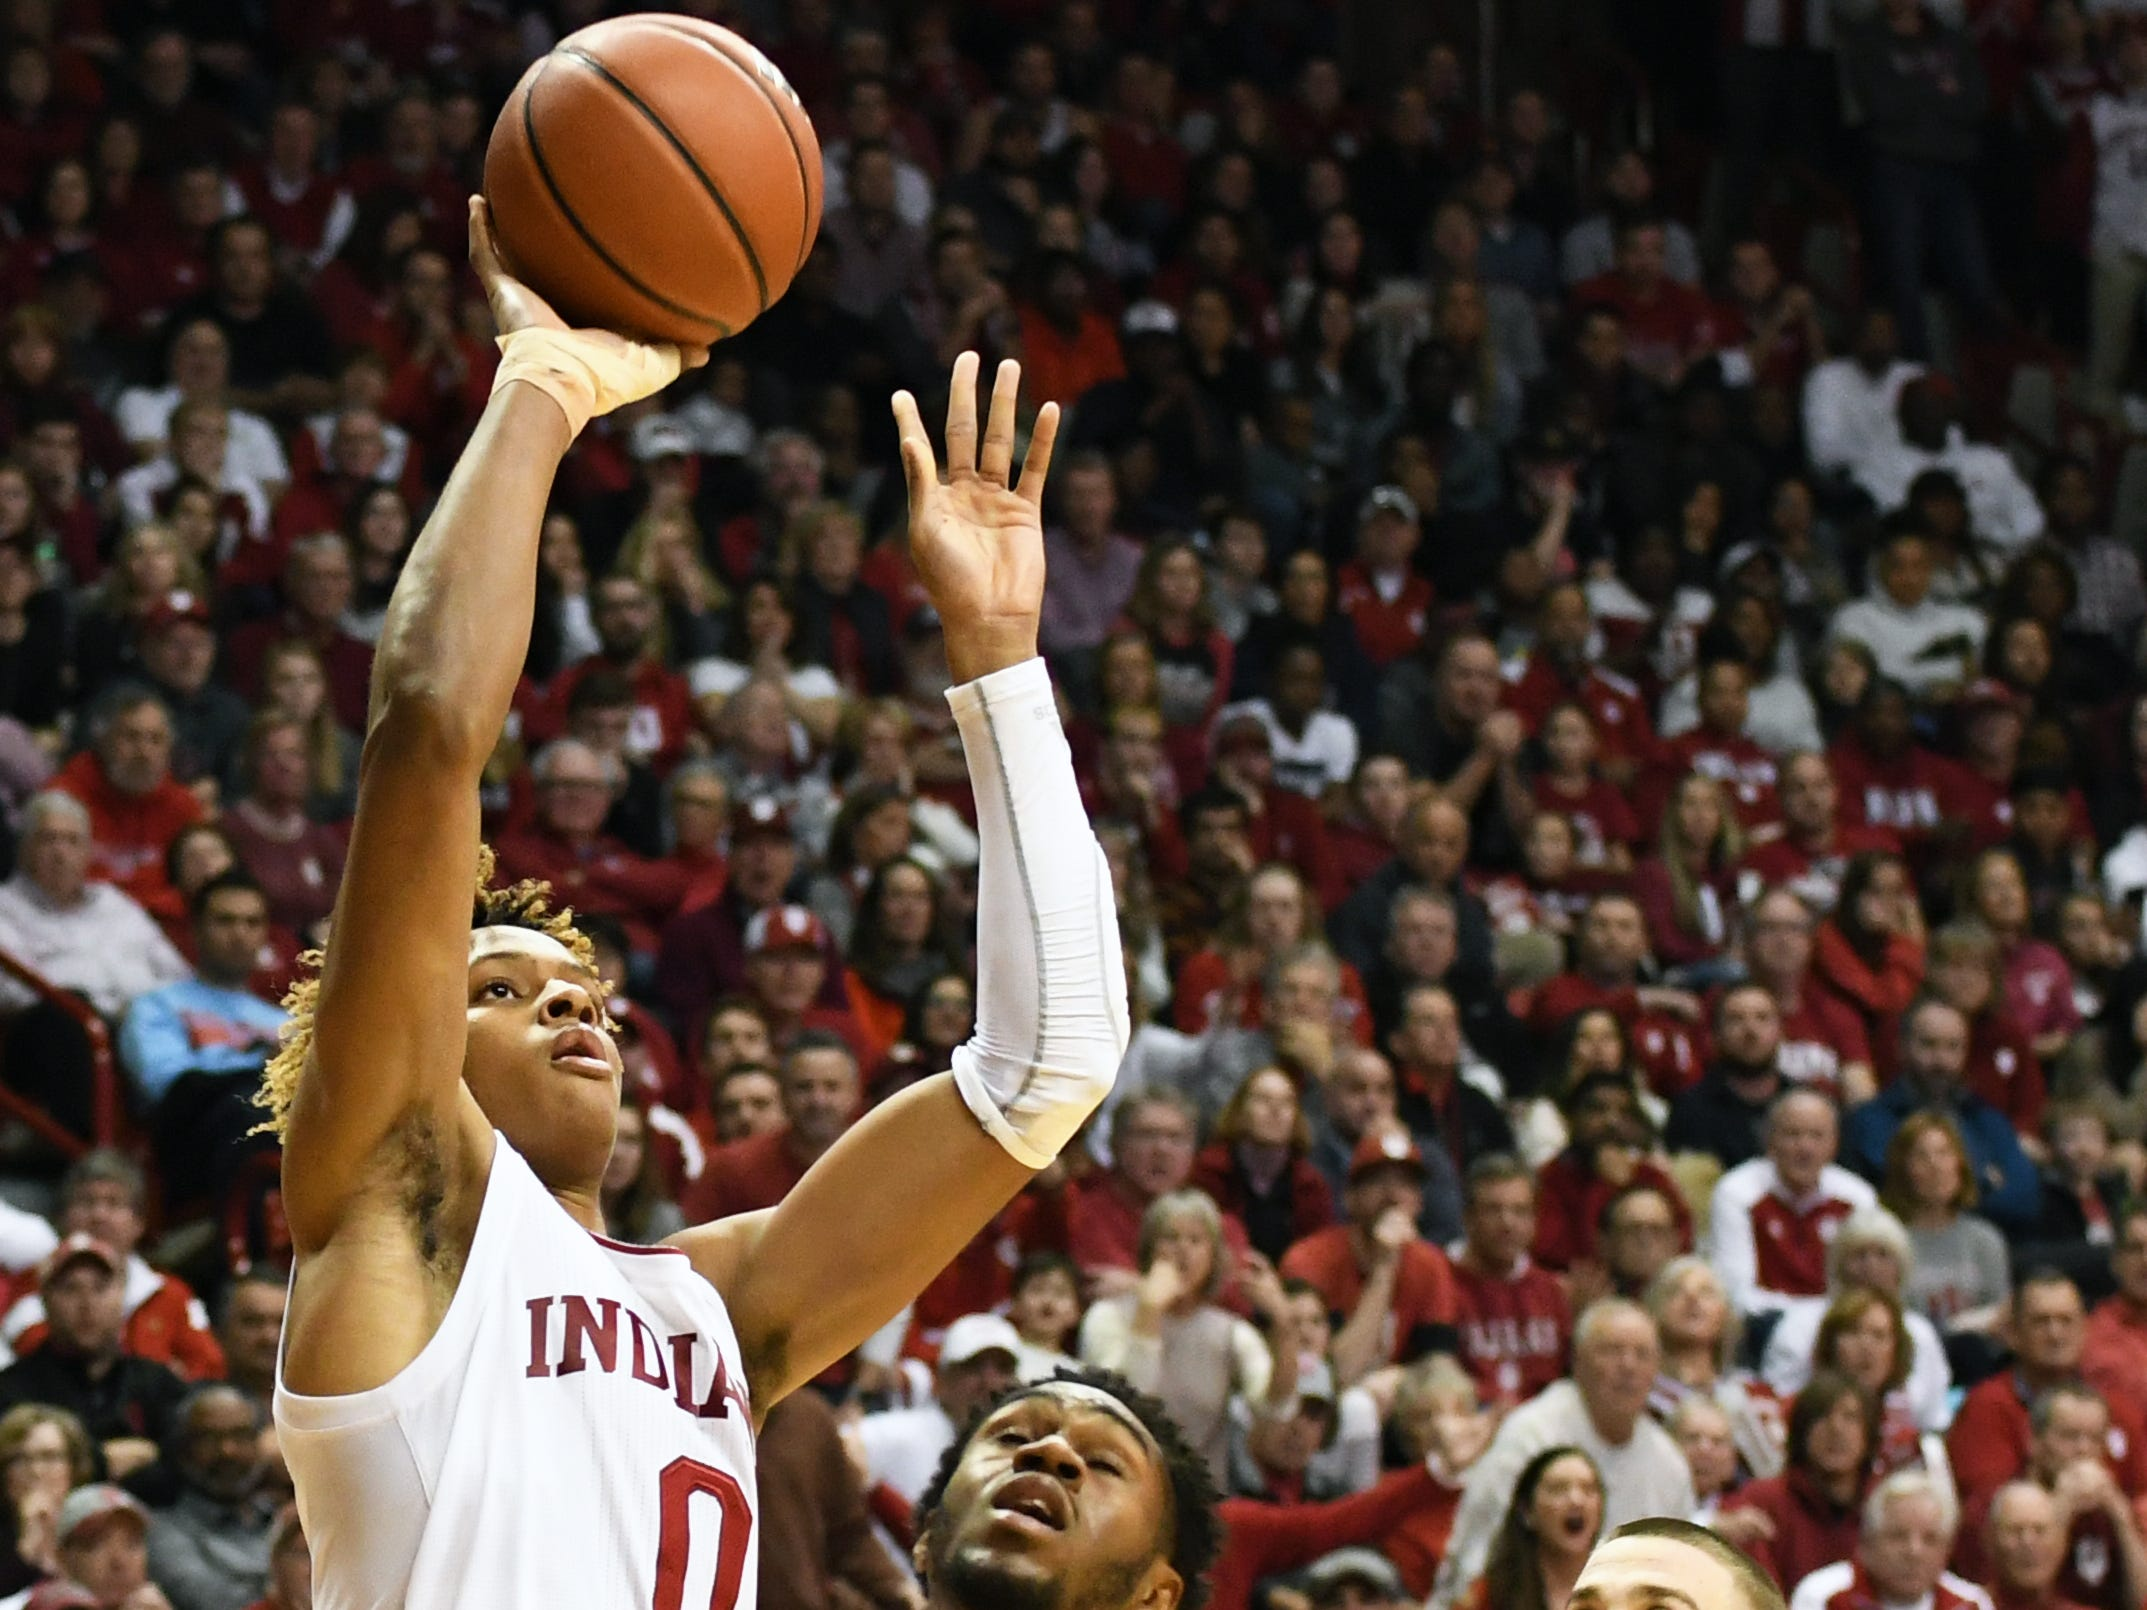 Indiana Hoosiers guard Romeo Langford (0) attempts a layup during the game against Louisville at Simon Skjodt Assembly Hall in Bloomington, Ind.